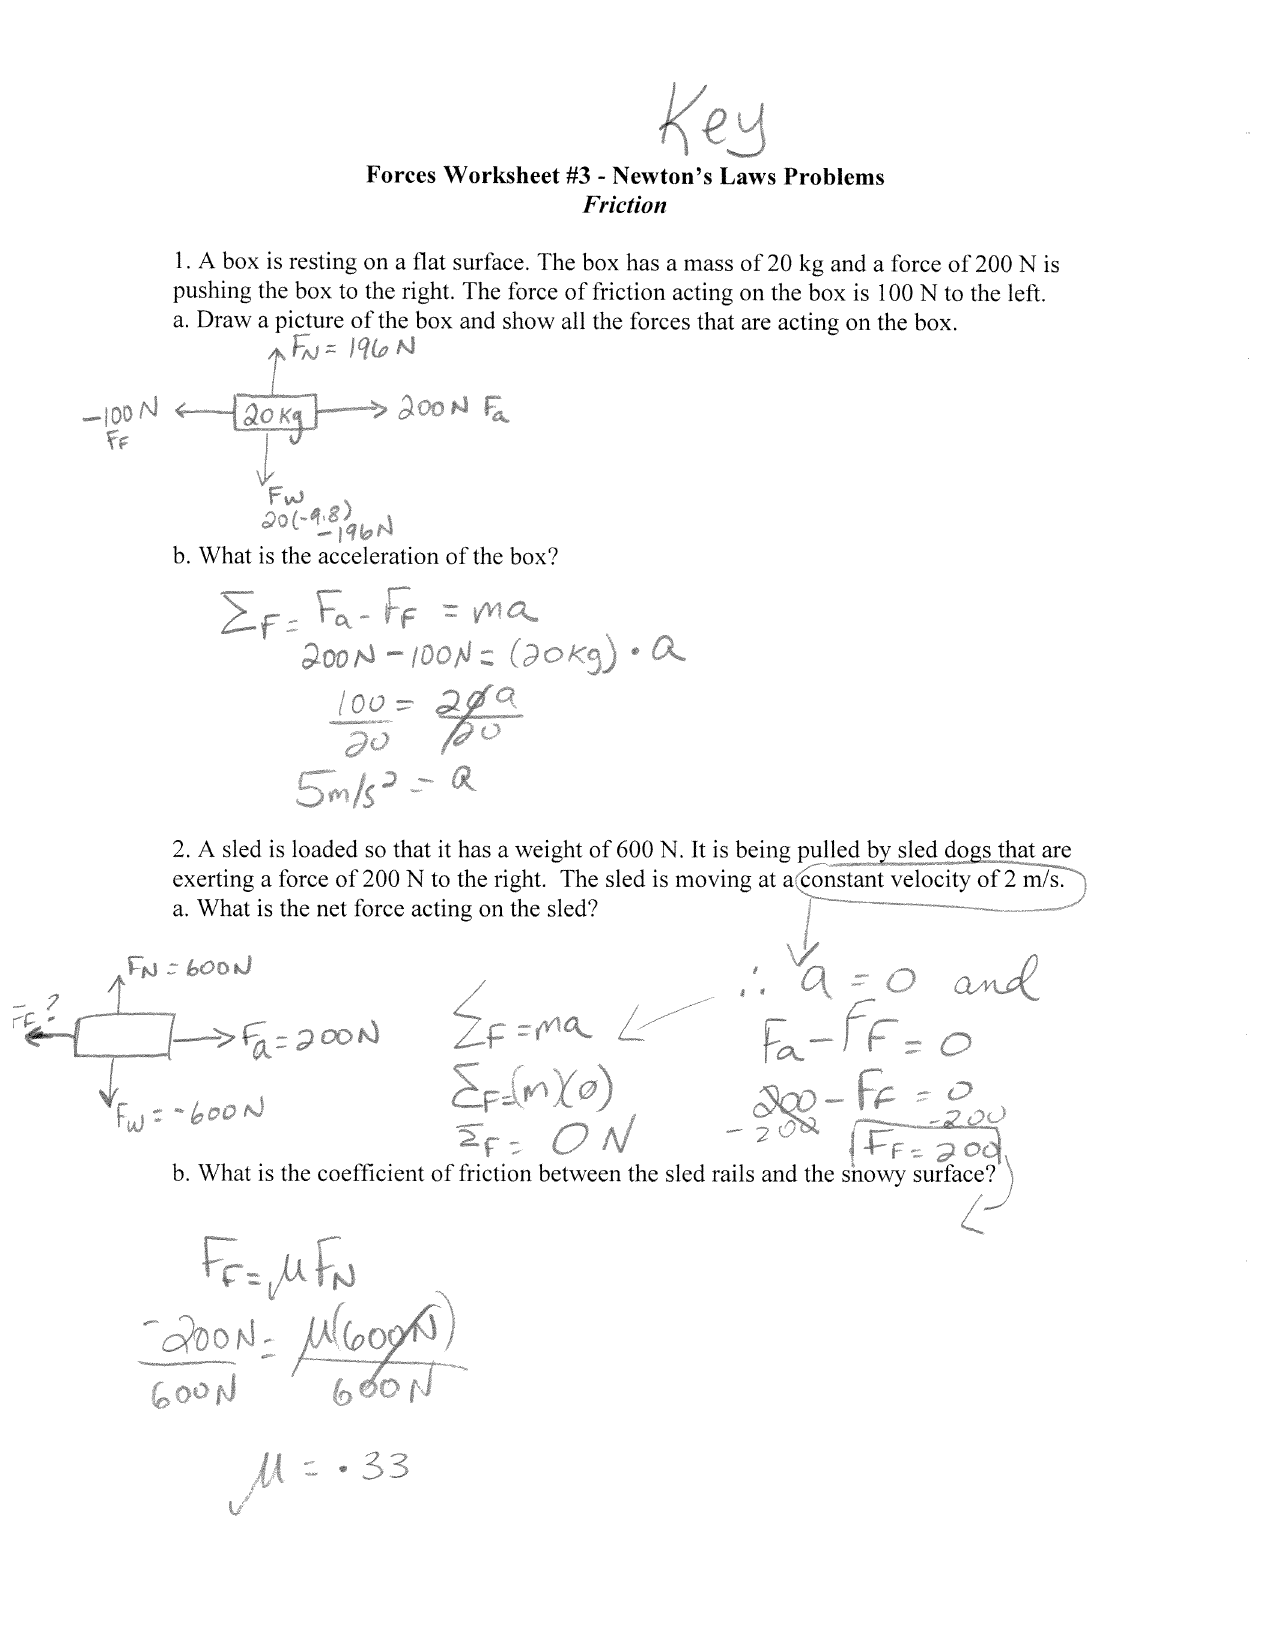 Physics Friction Worksheet Answers